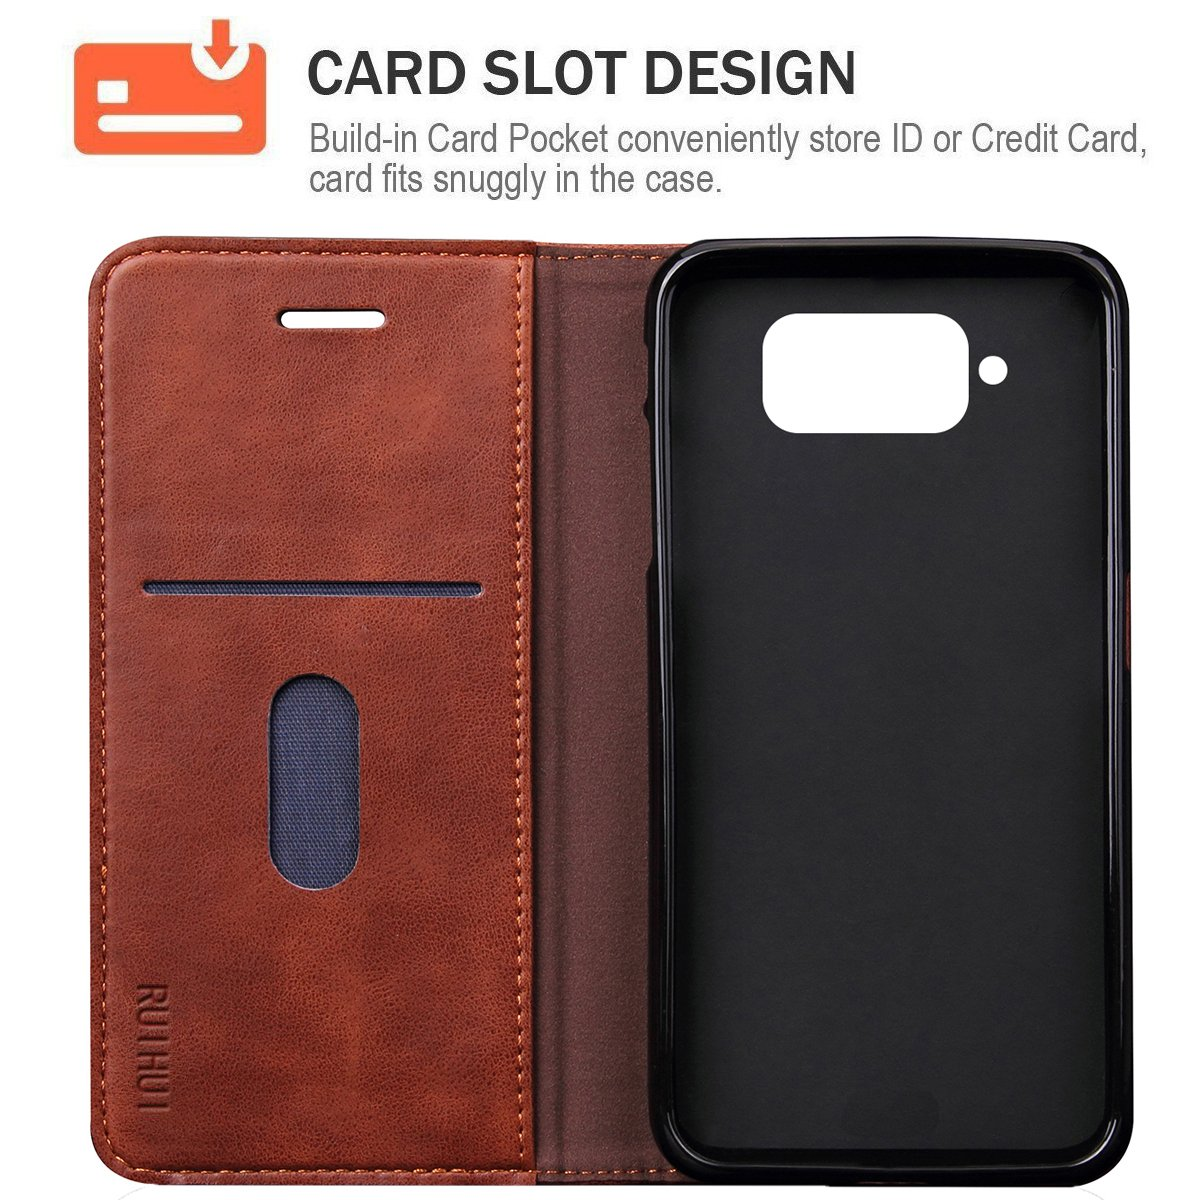 Galaxy S6 Active Casenot For S6ruihui Luxury Goospery Samsung J3 2017 Pro Canvas Diary Case Orange Flip Leather Wallet Shockproof Protective Tpu Bumper With Magnetic Closurecard